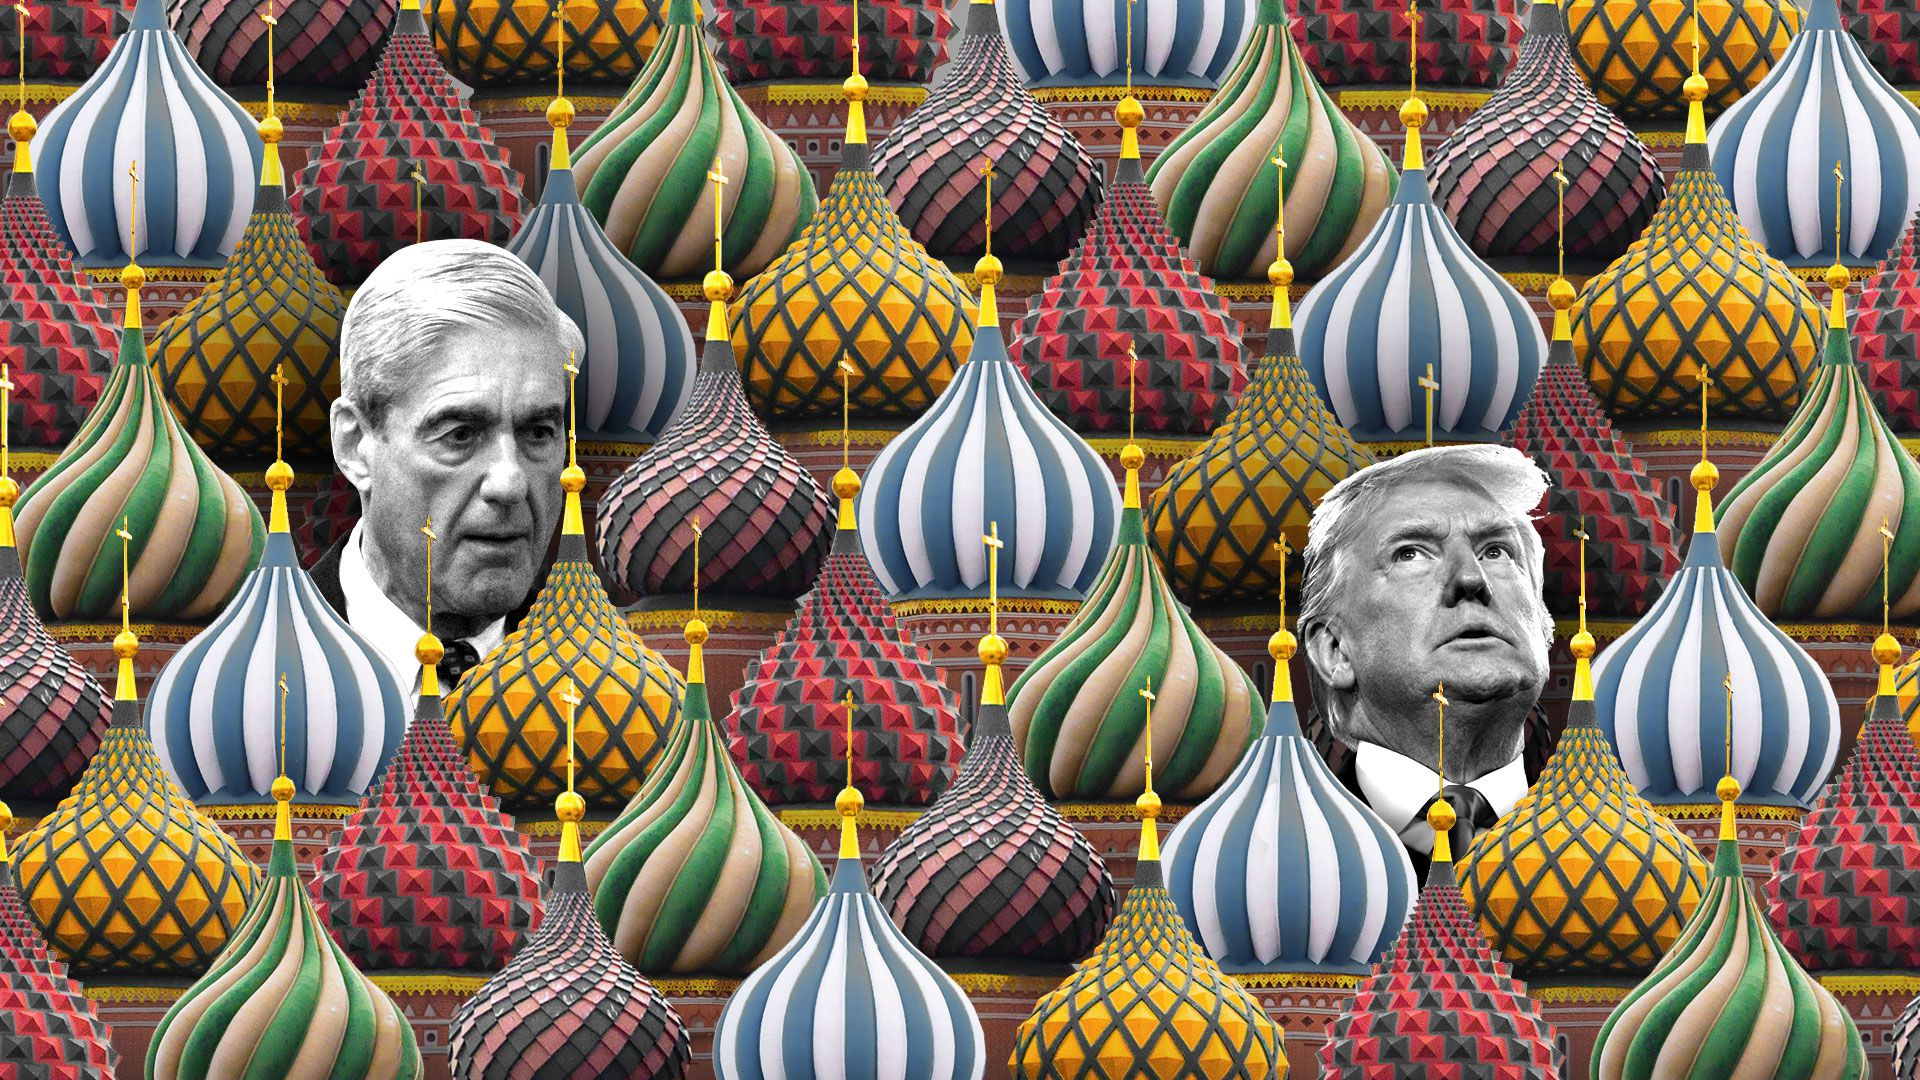 This is an illustration of Mueller, Trump and some Russian cathedral domes